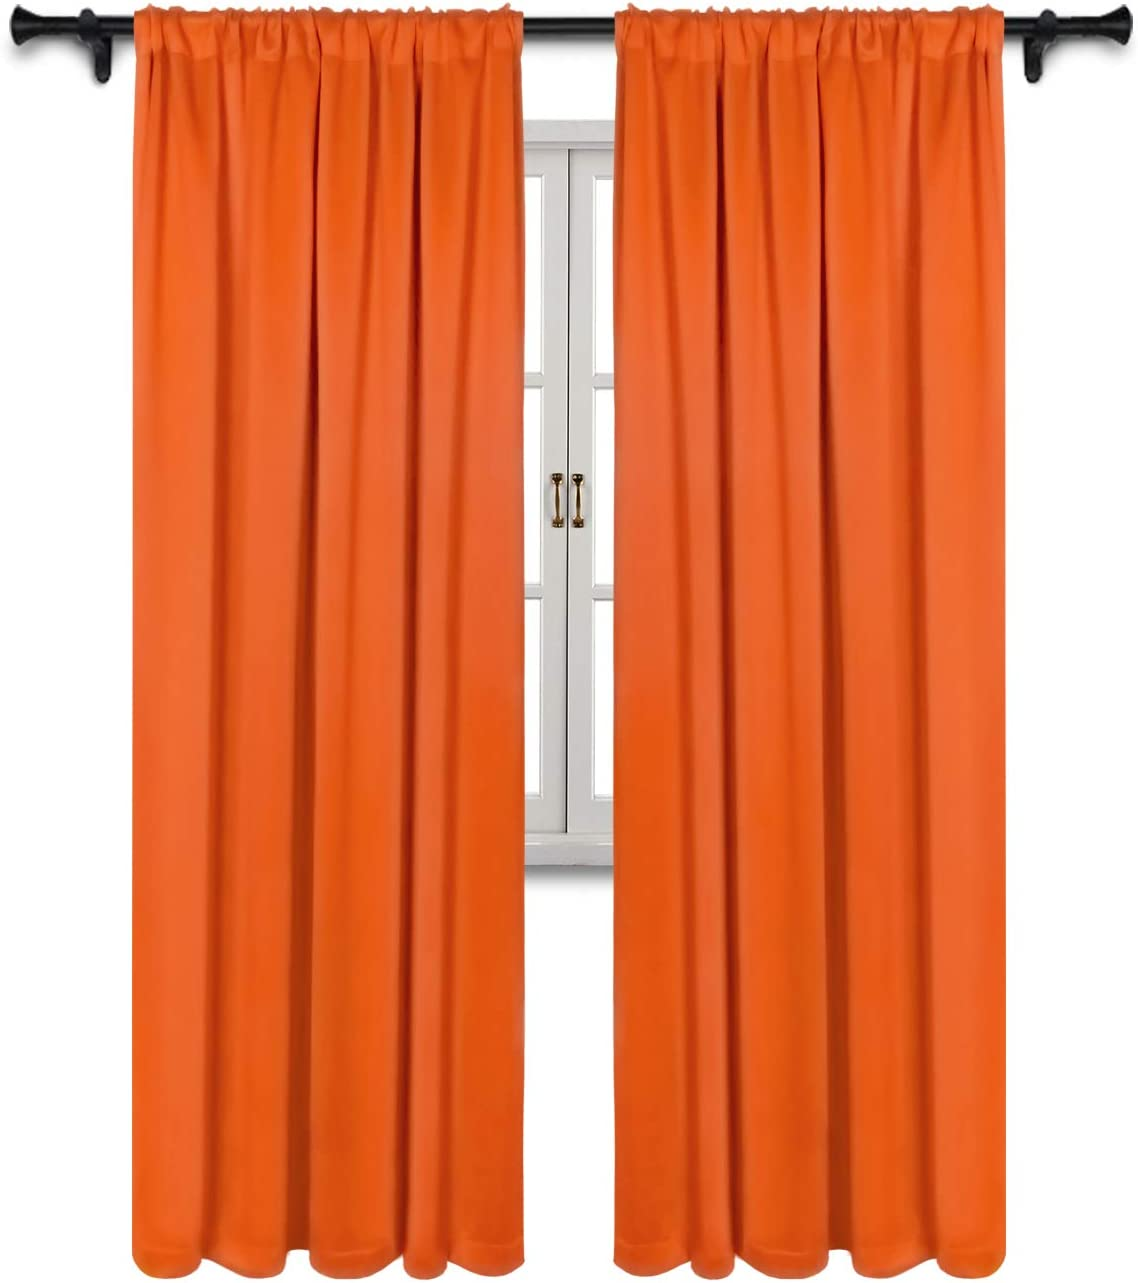 SUO AI TEXTILE Thermal Insulated Drapes Rod Pocket Top Blackout Room Darkening Window Panels Energy Efficient Window Curtains,Orange, 2 Panels, 37 x 95 Inch